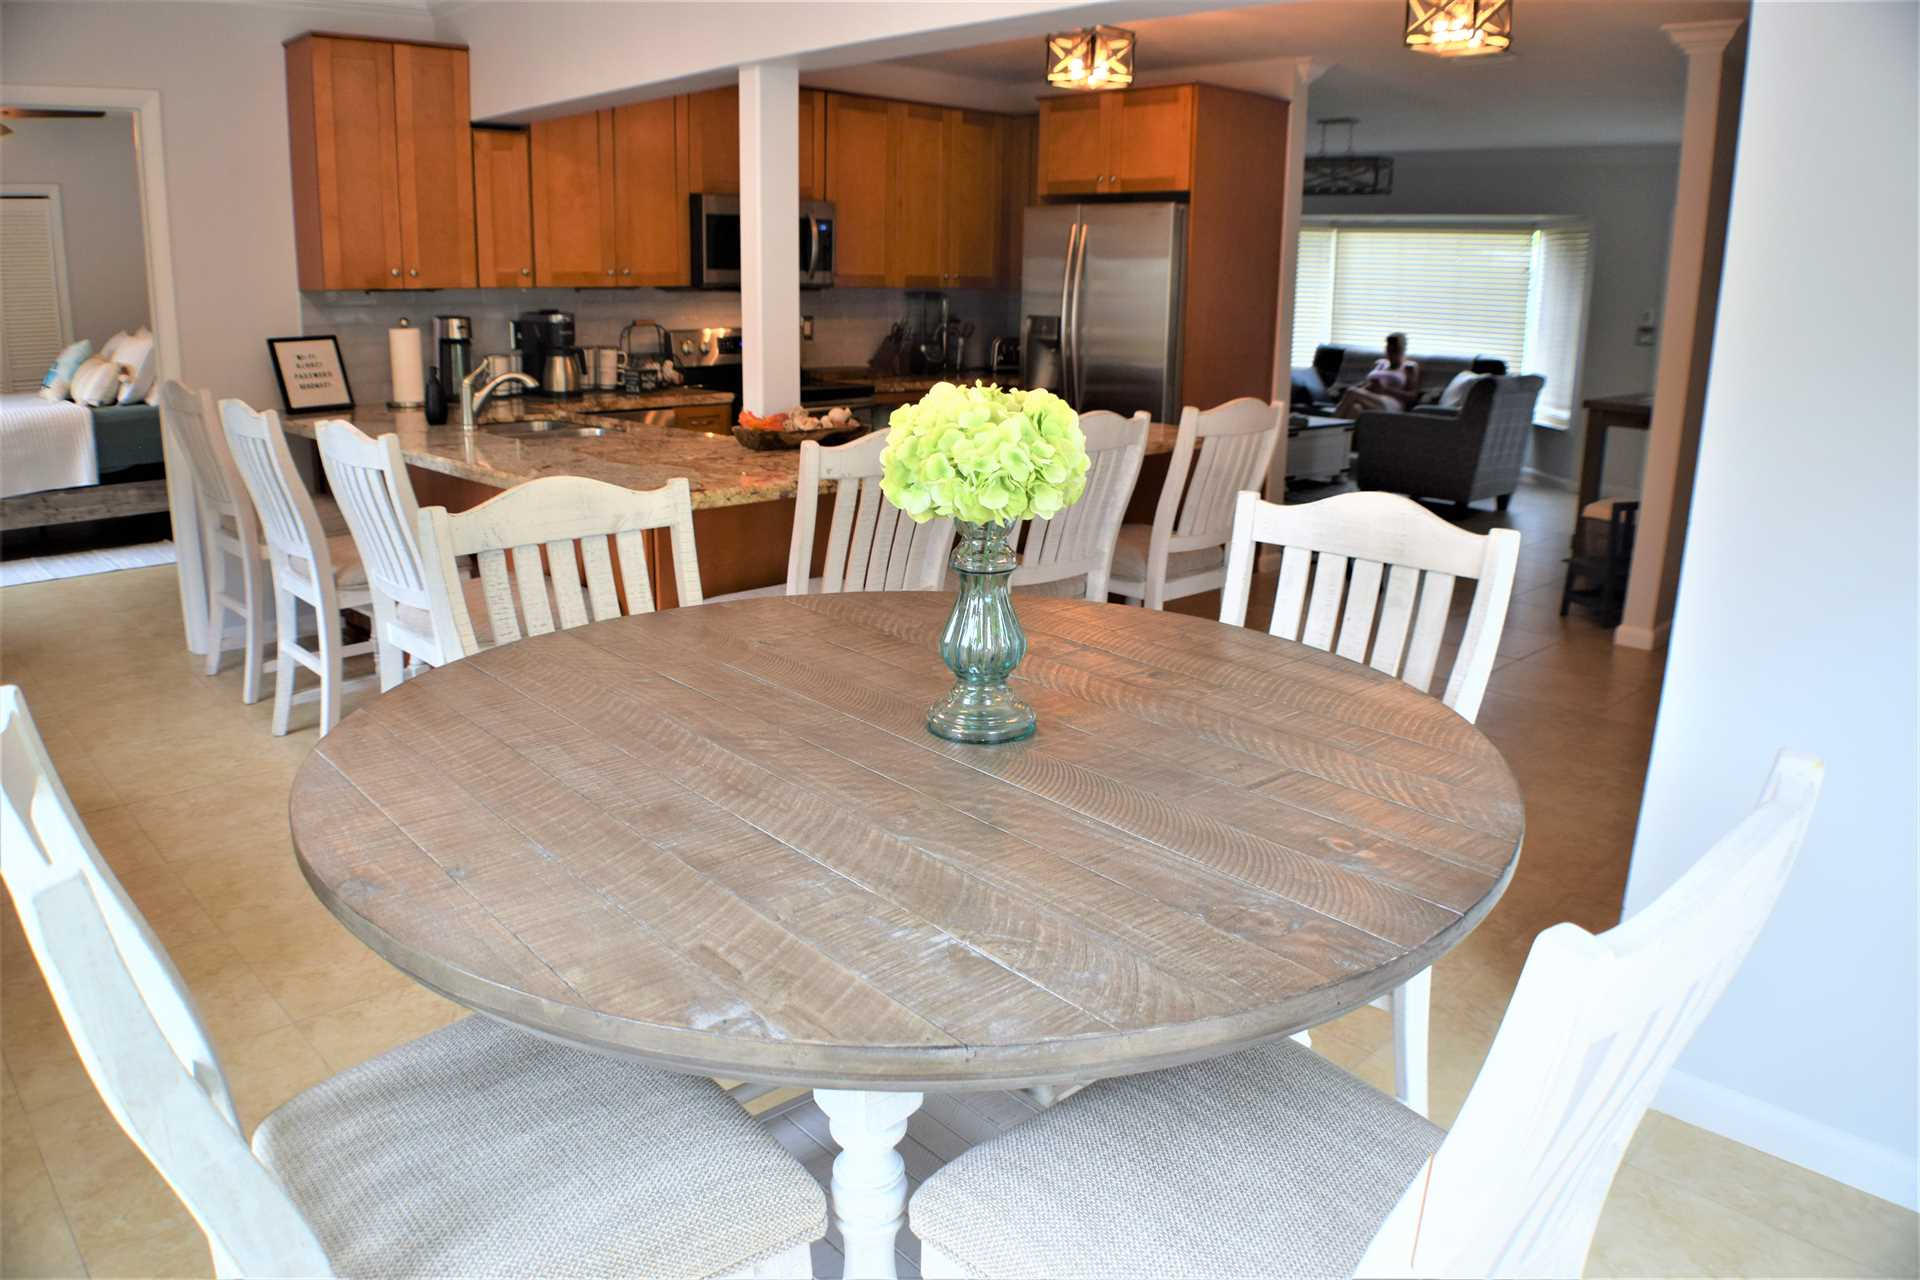 The circular dining table adds to the seating for inside din